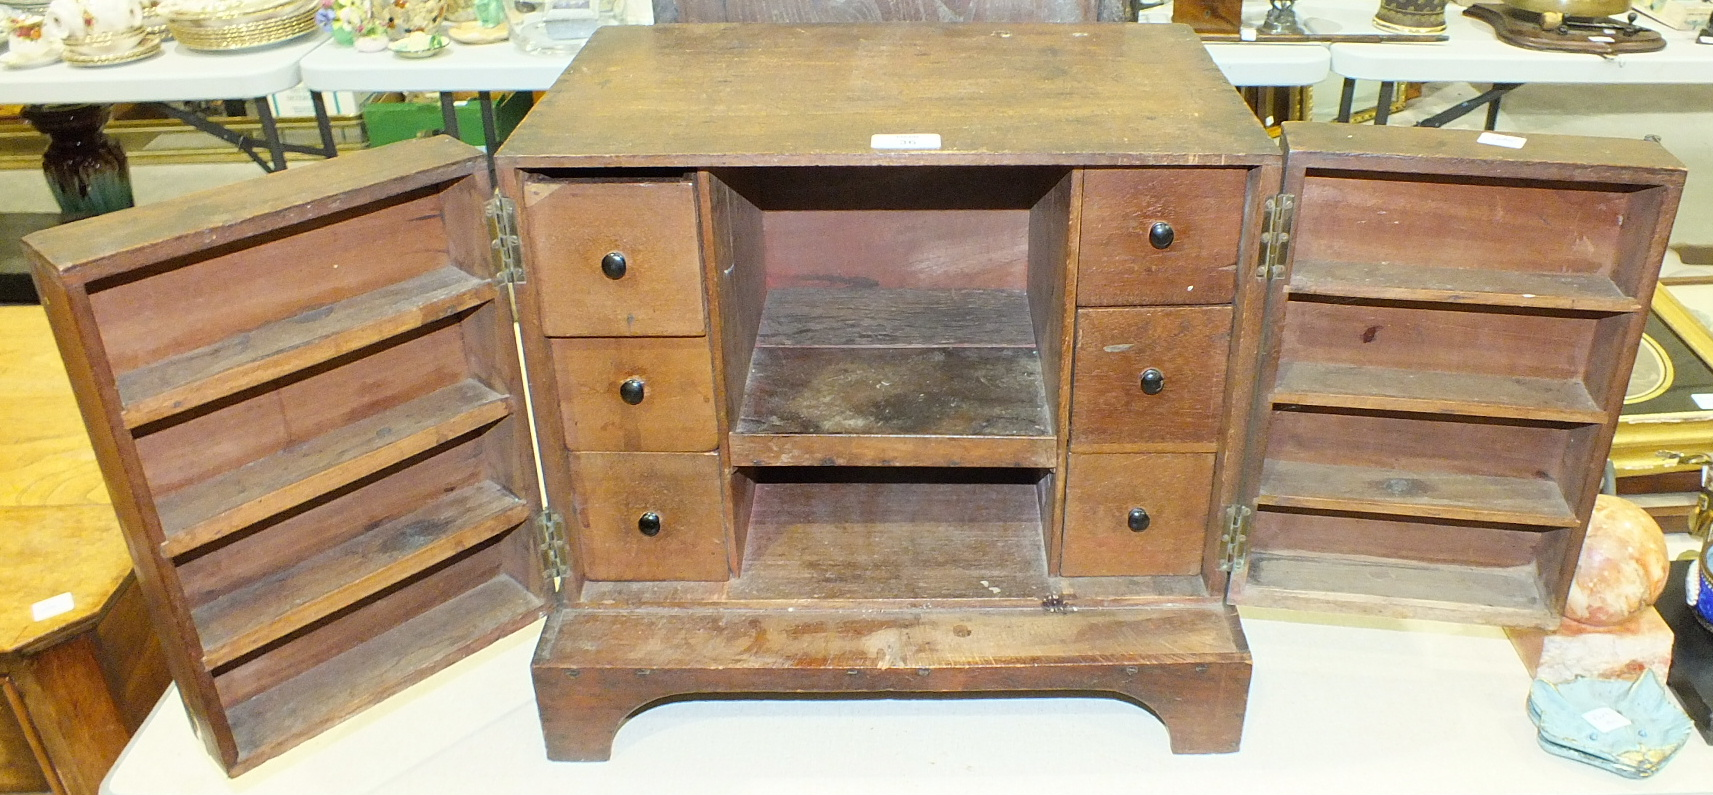 Lot 36 - An antique oak chest of two drawers constructed from old timber, 43 x 33cm and a mahogany two-door